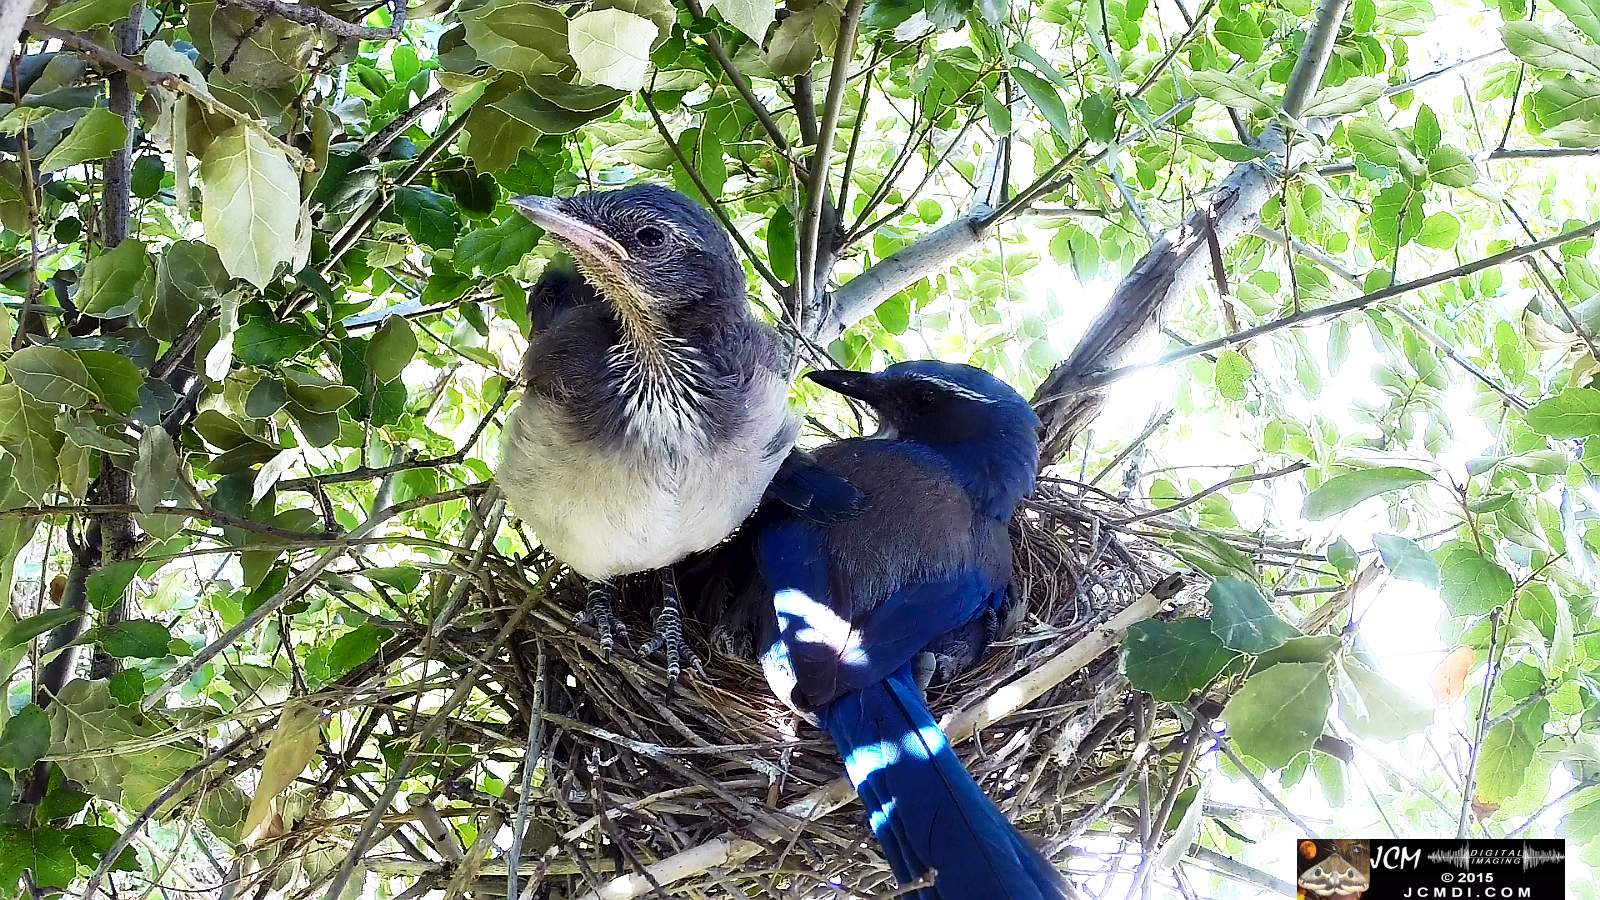 Scrub Jay Documentary chicks climbs on parent who leaves